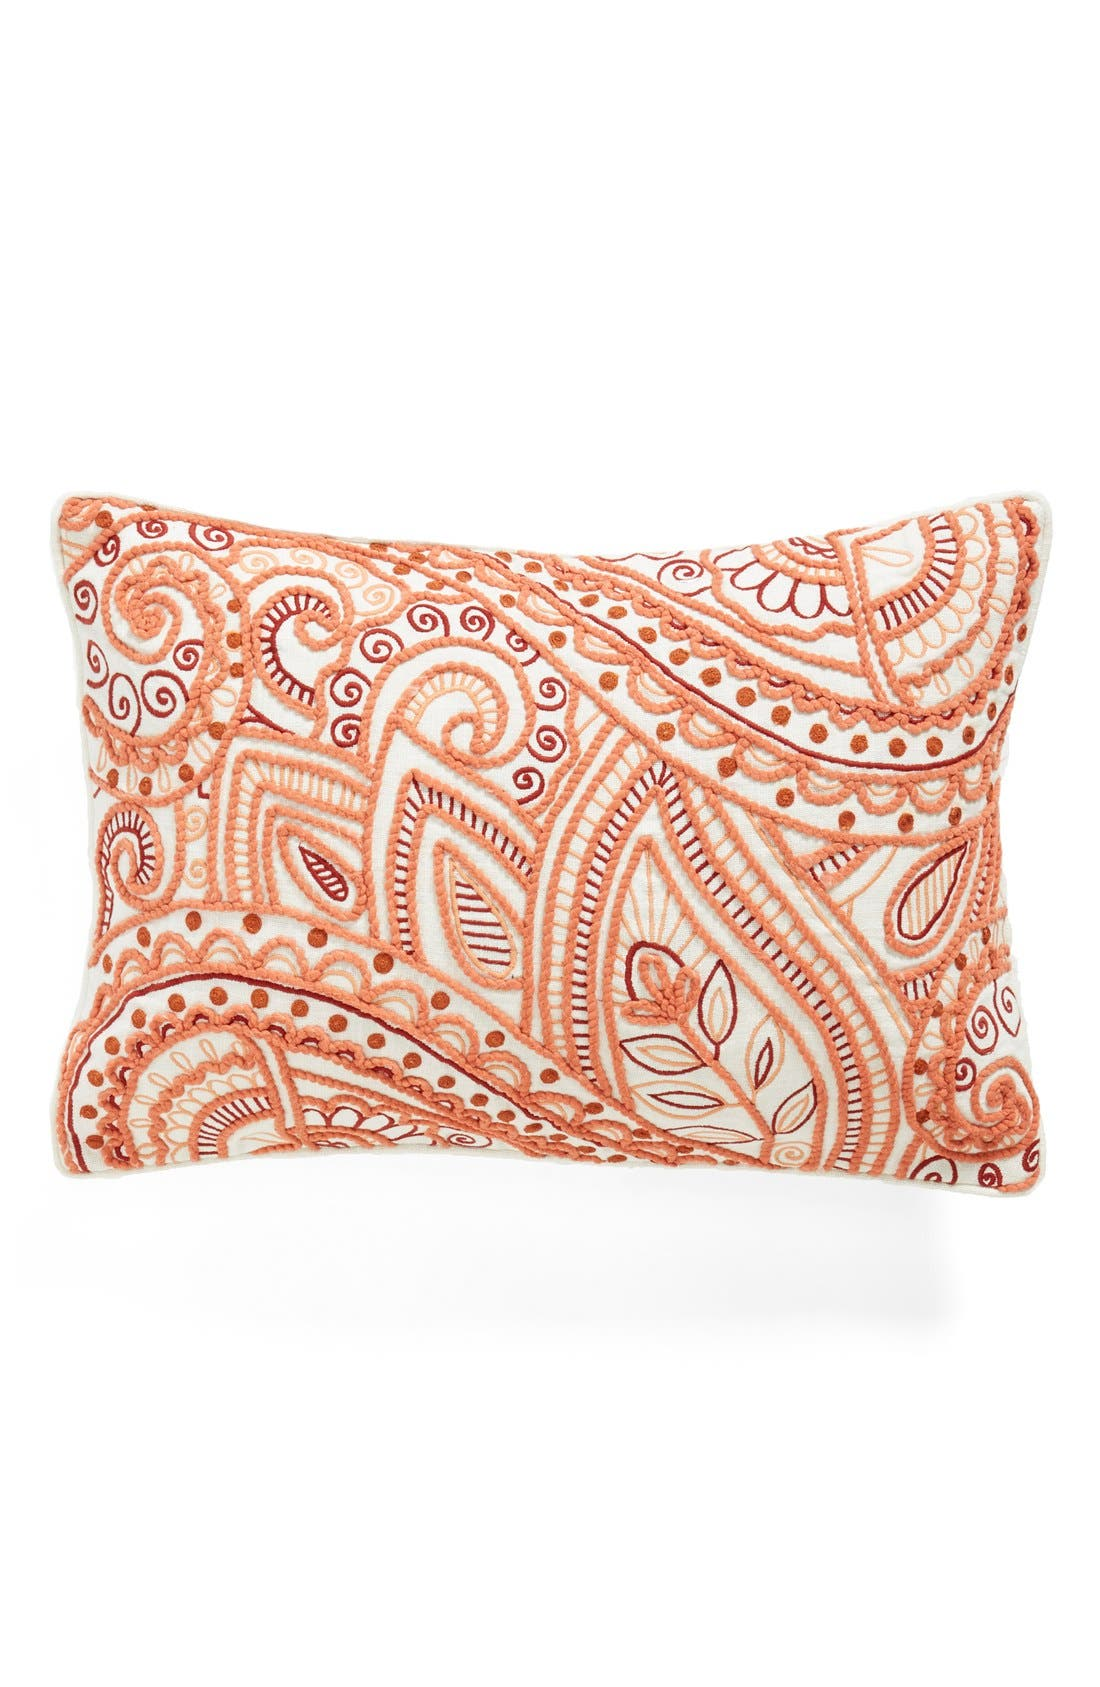 Alternate Image 1 Selected - Nordstrom at Home 'Plumeria' Accent Pillow